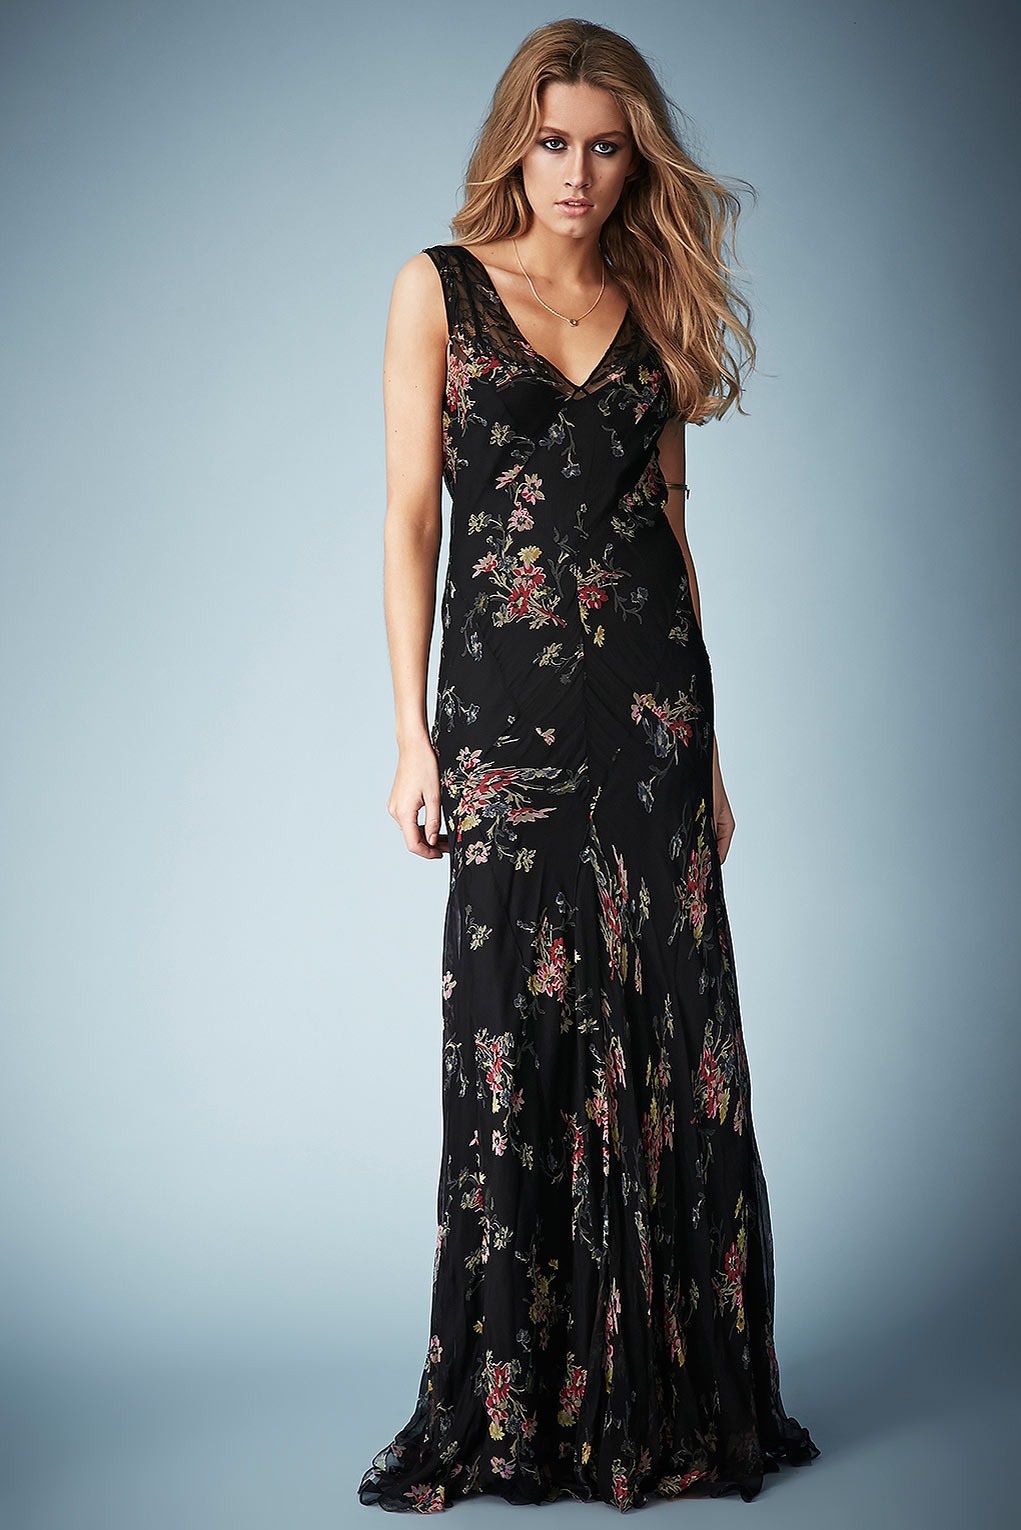 Lyst Topshop Floral Chiffon Maxi Dress By Kate Moss For